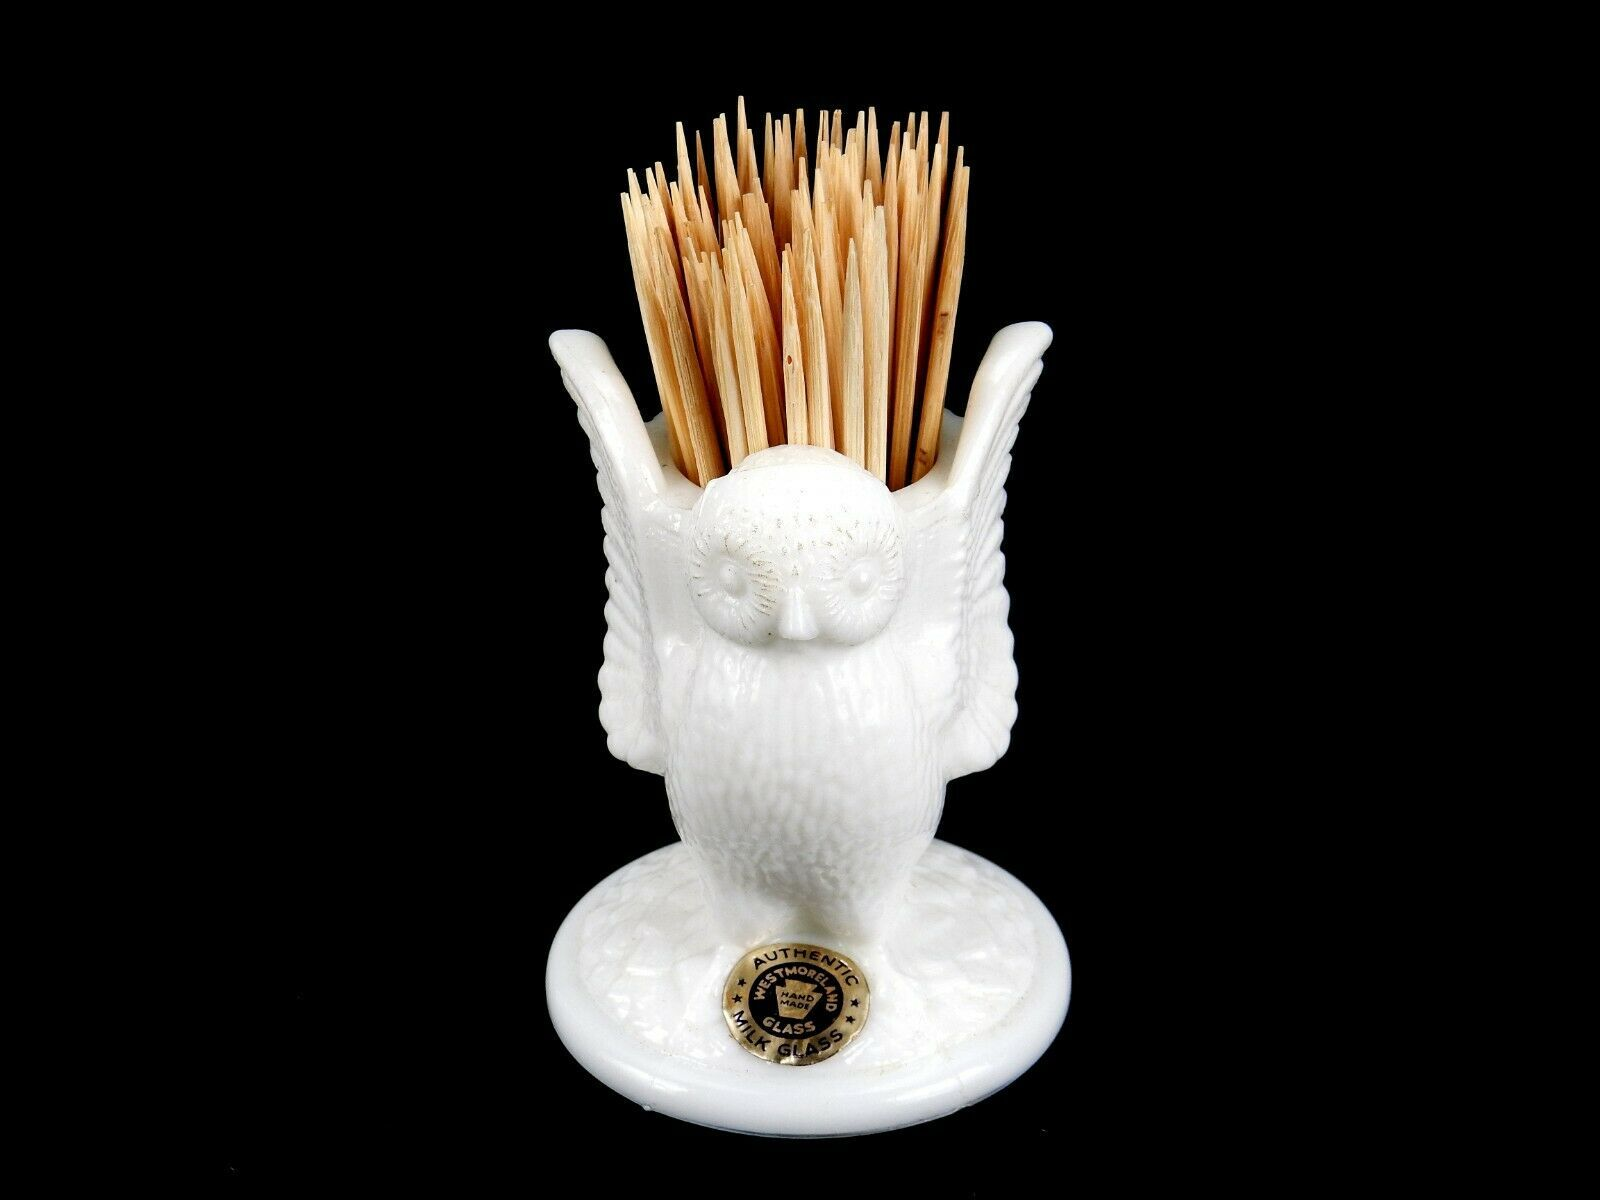 Primary image for Open Winged Owl Toothpick Holder, Vintage Westmoreland White Milk Glass, TPK-103